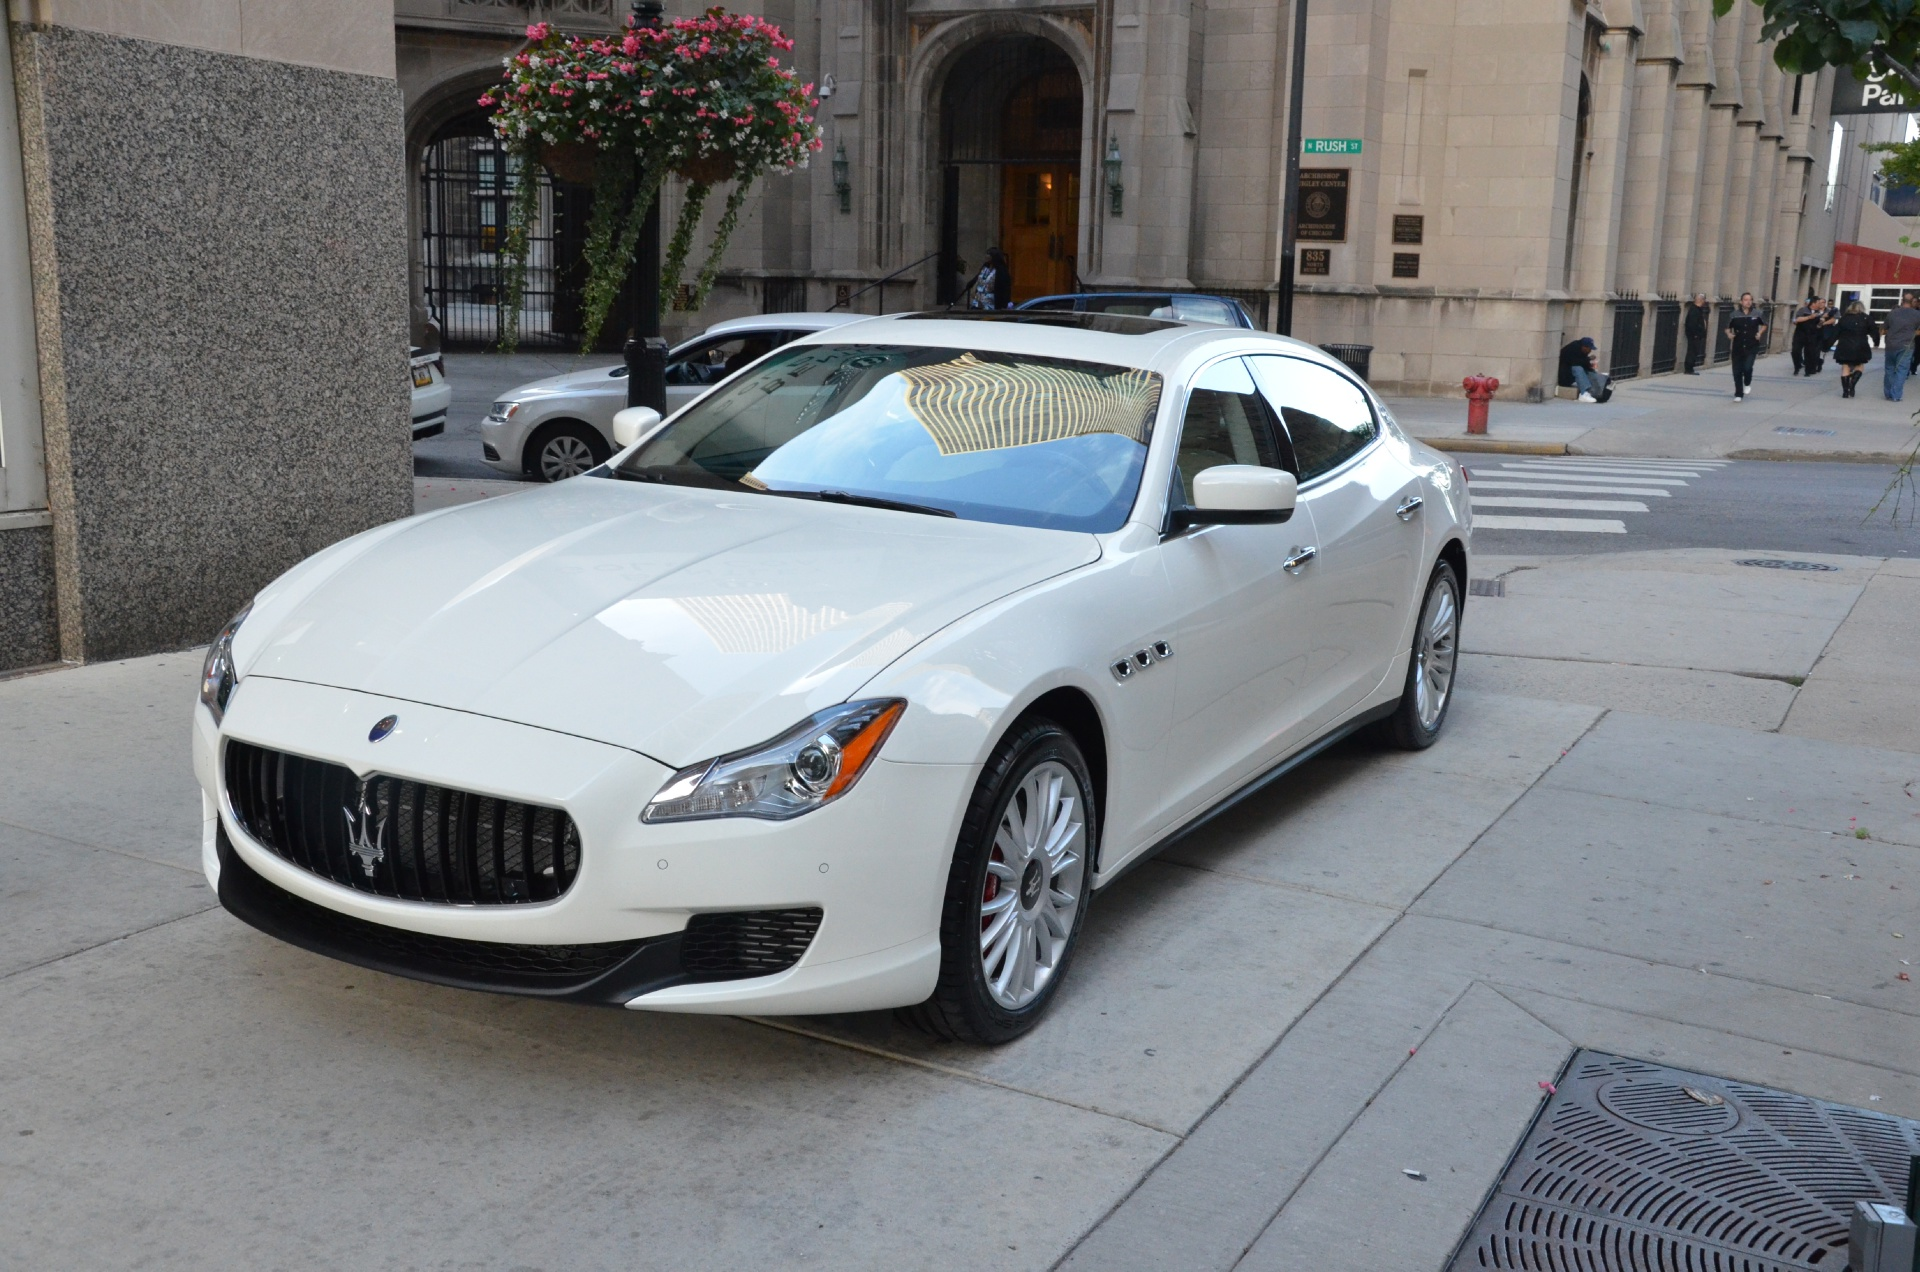 2014 maserati quattroporte s q4 s q4 stock m176 s for sale near chicago il il maserati dealer. Black Bedroom Furniture Sets. Home Design Ideas